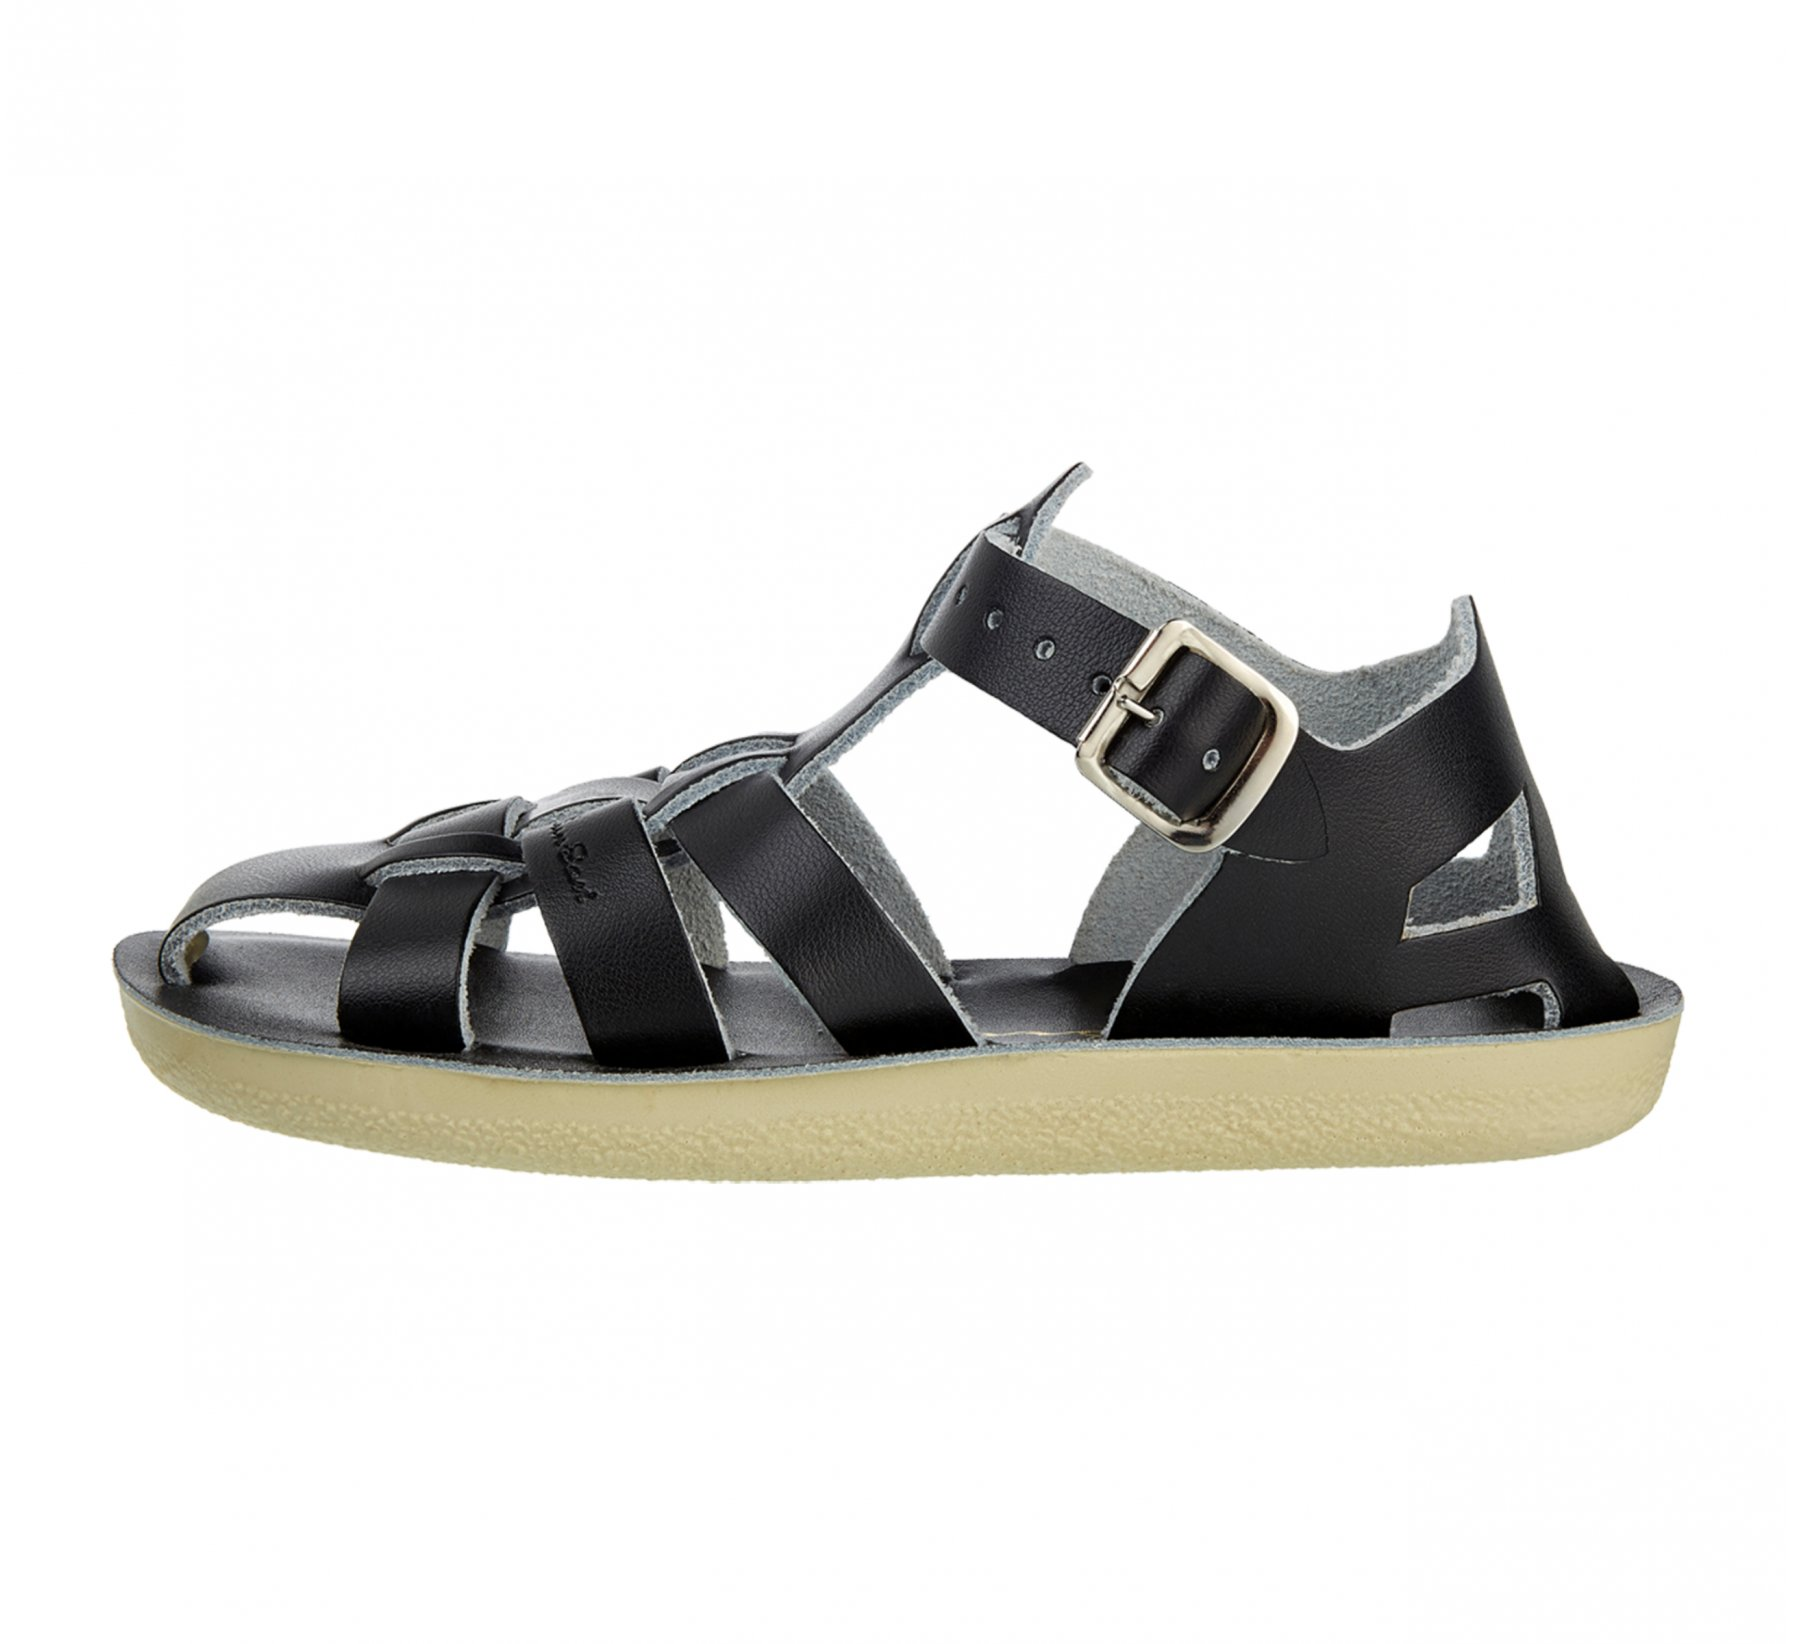 Shark Black - Salt Water Sandals